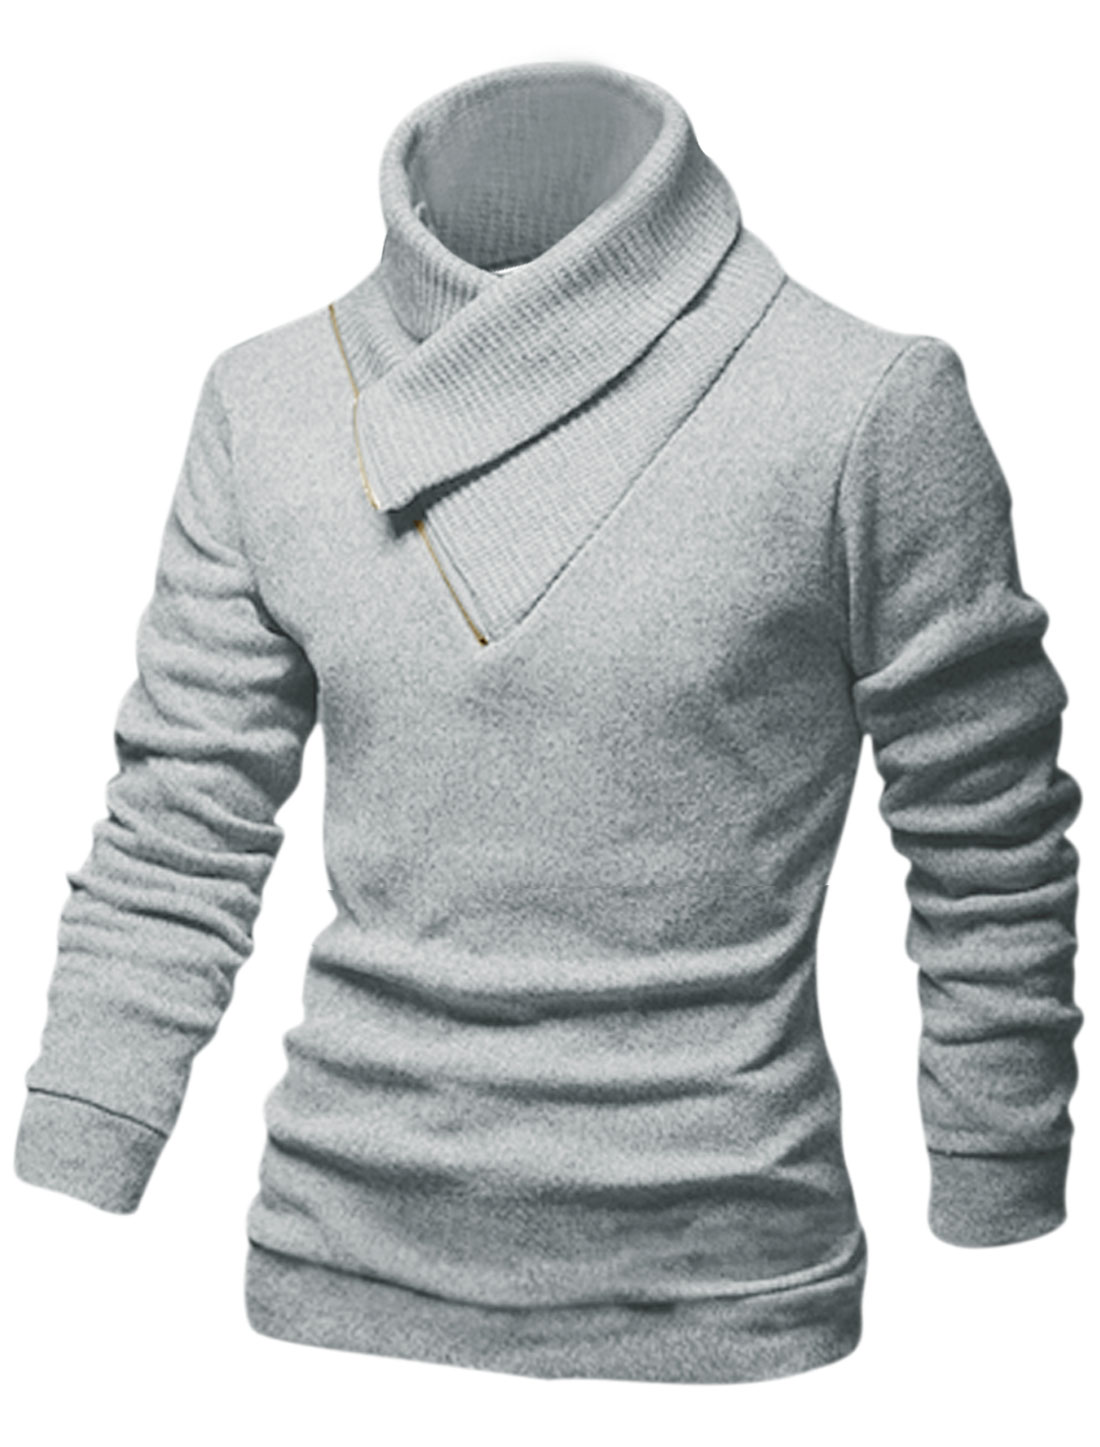 Men Convertible Collar Slipover Casual Knit Shirt Light Gray M